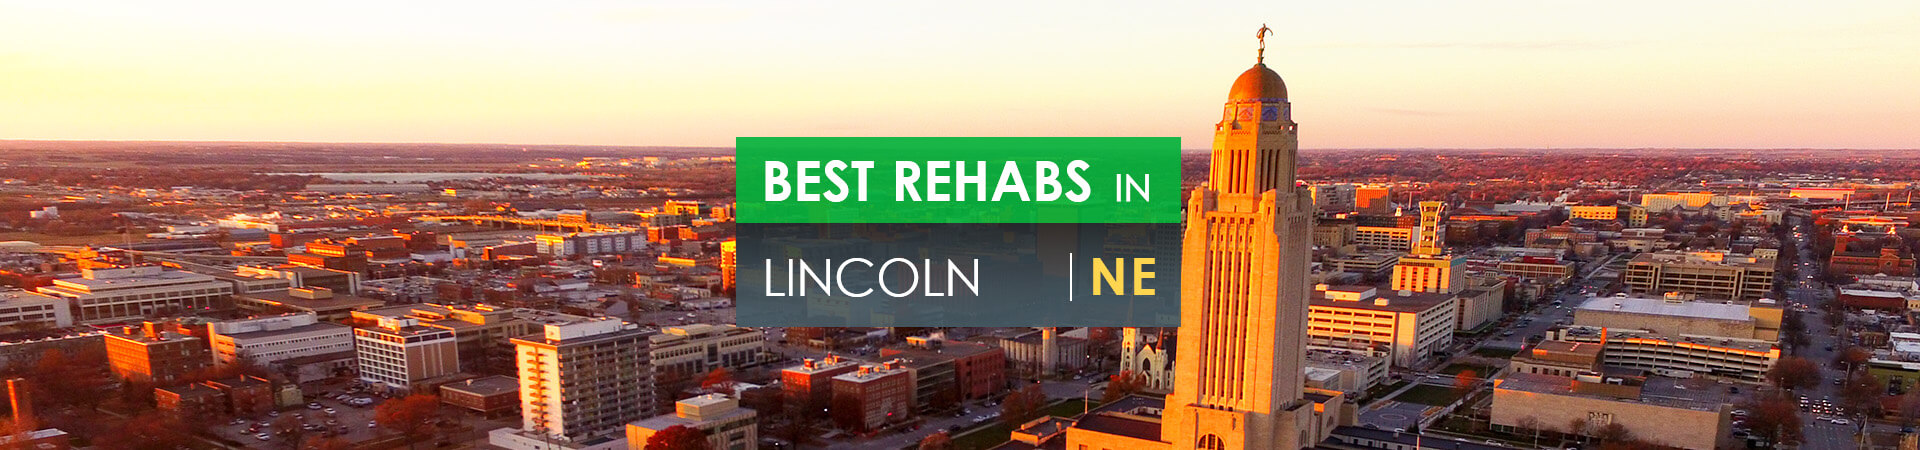 Best rehabs in Lincoln, NE